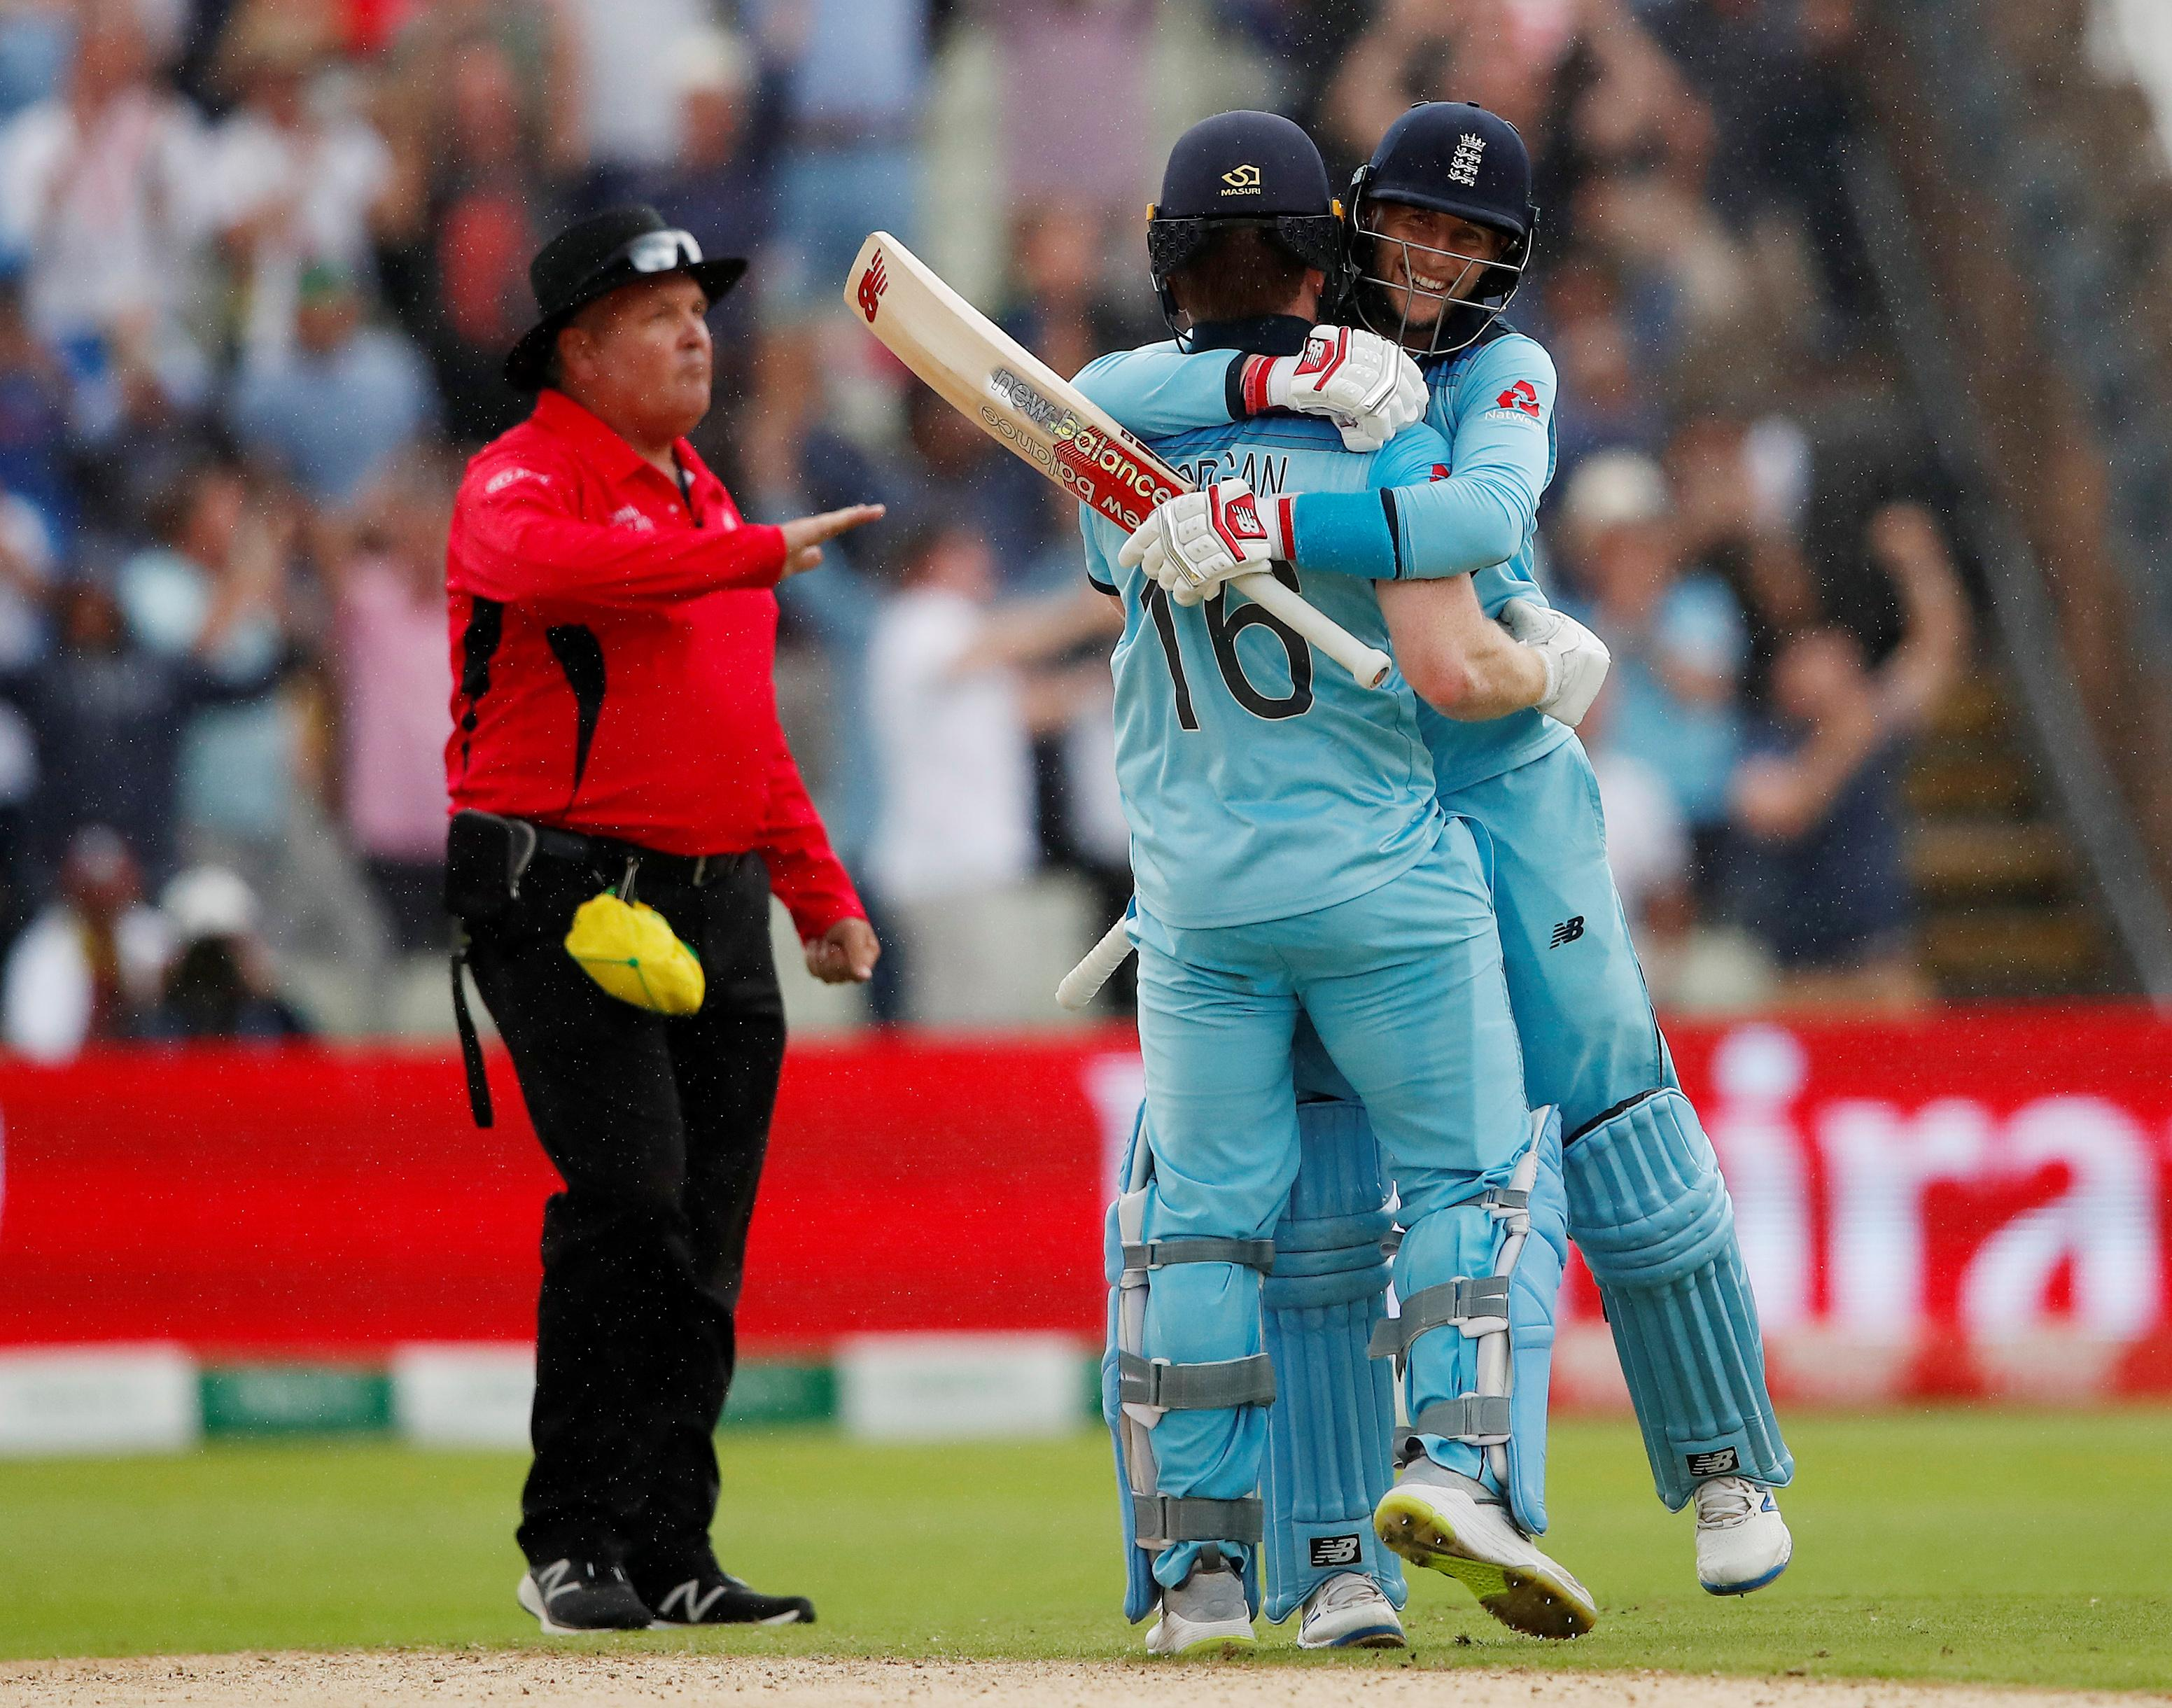 England could bring World Cup high into Ashes, says Ponting